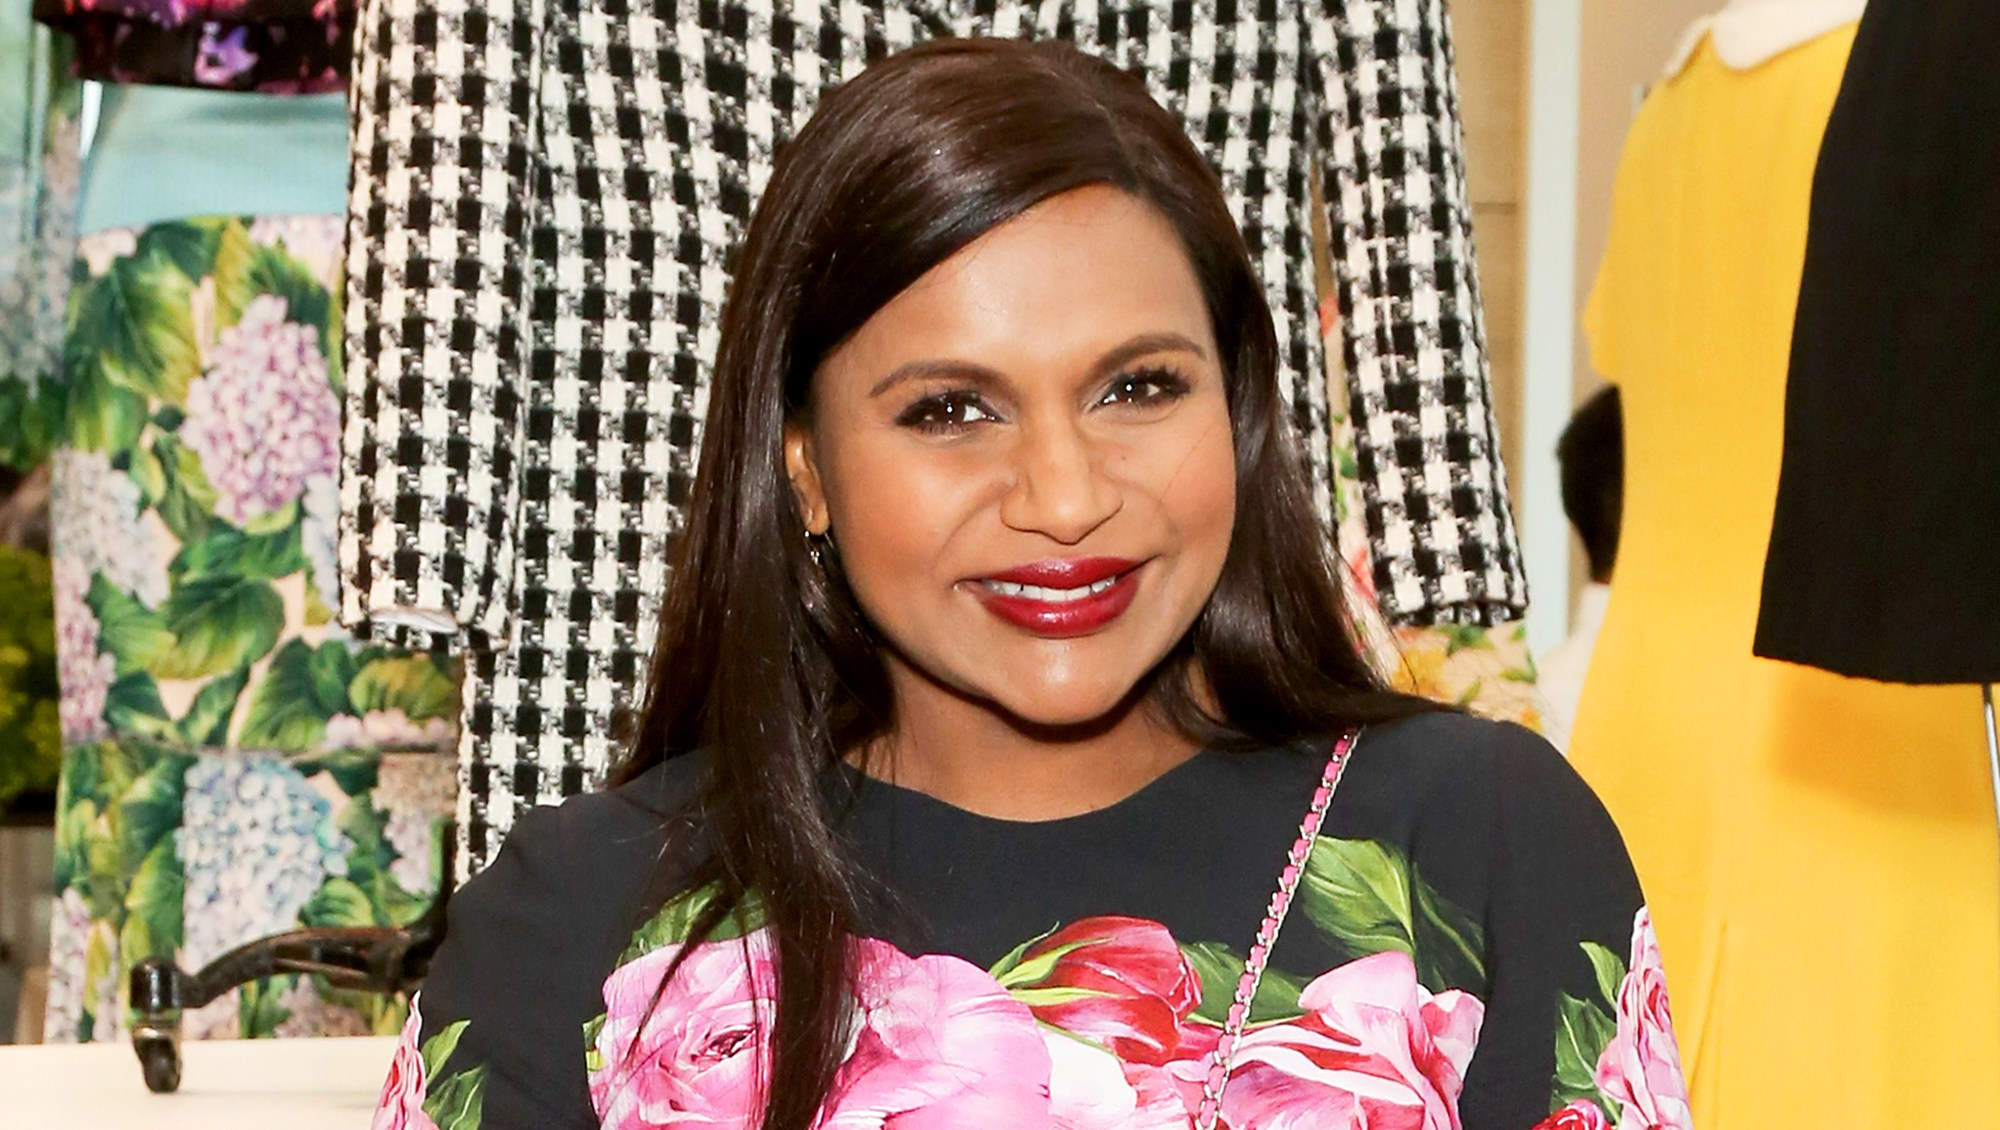 Mindy Kaling attends the 'The Mindy Project': 6 Seasons Of Style at The Paley Center for Media on August 24, 2017 in Beverly Hills, California.